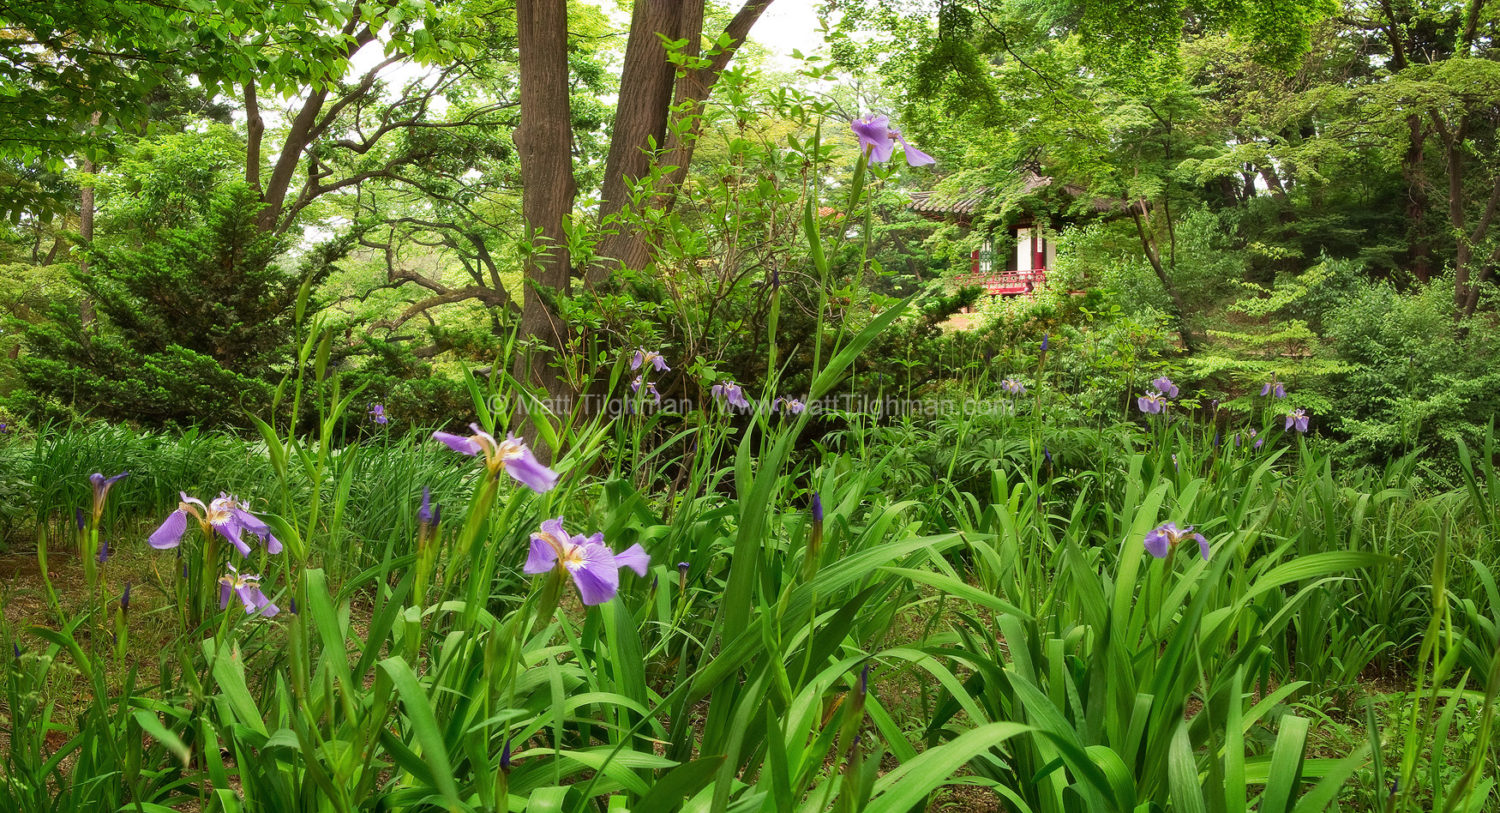 Beautiful fine art stock photograph from the Secret Garden of the Changdeokgung Palace in Seoul, South Korea.